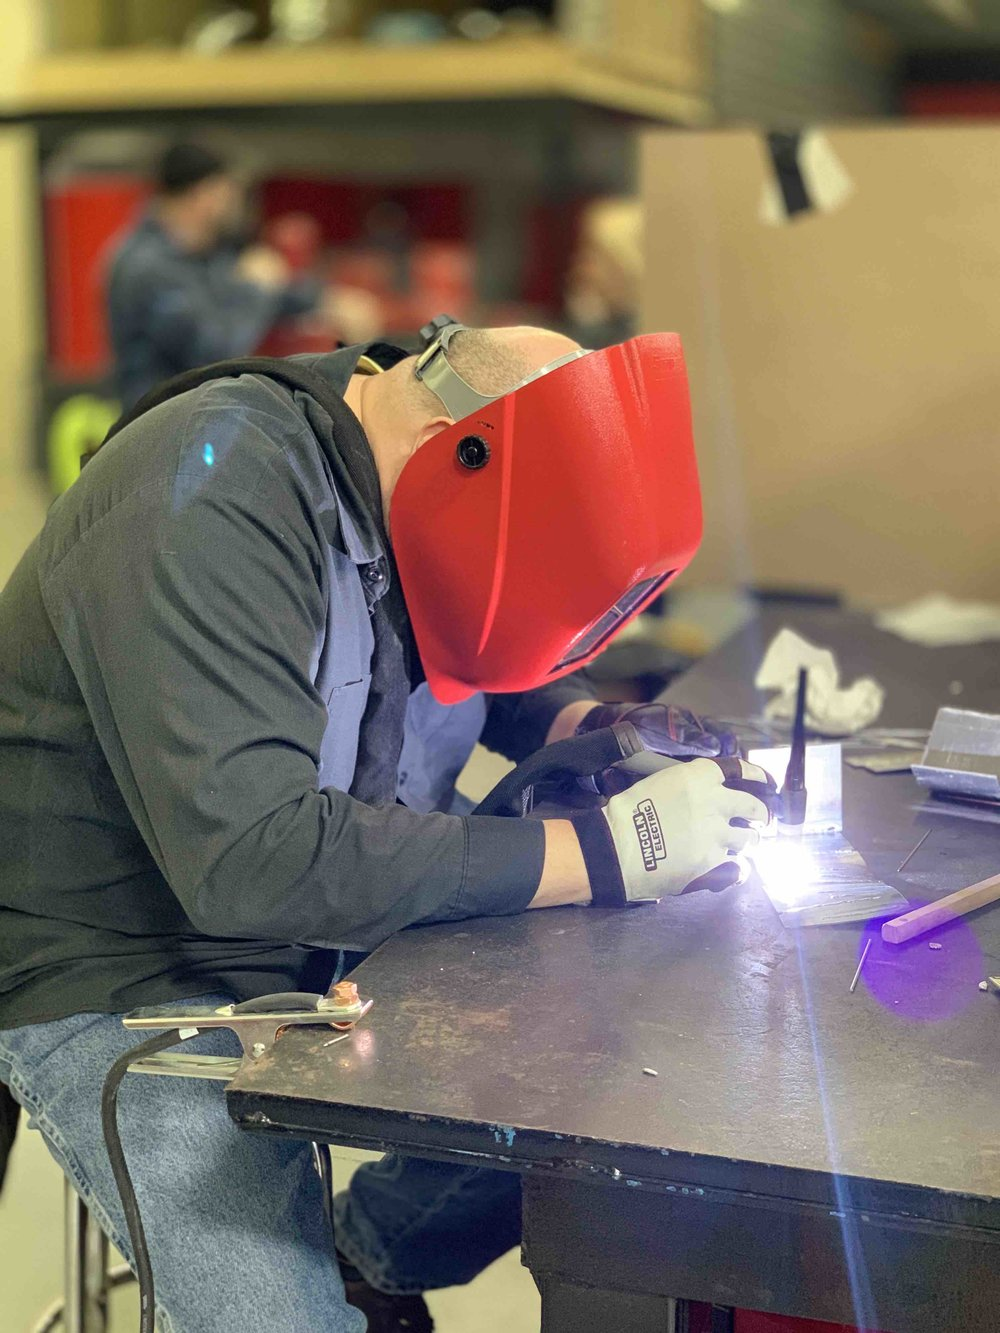 Fuller-Moto-Welding-Workshop-Jan2019-22.jpg